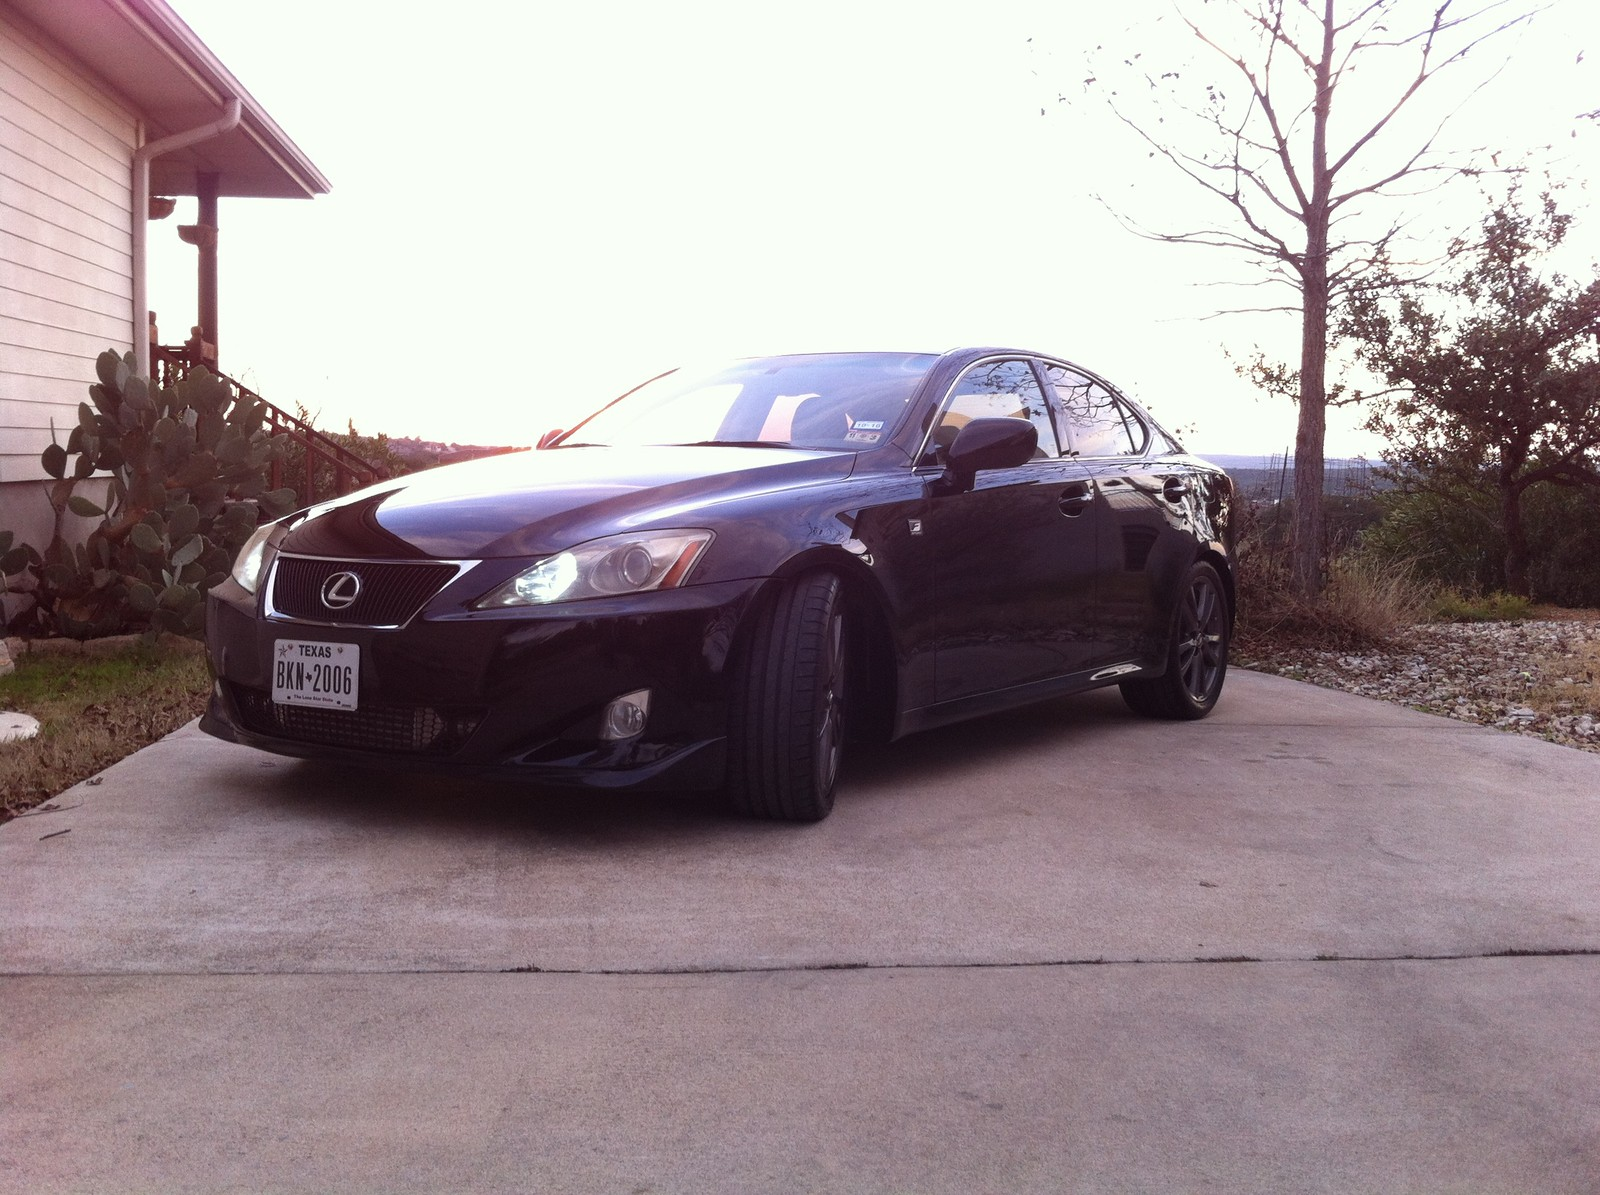 Black 2006 Lexus IS350 FSport Dealer PKG Rotrex C38-71 Supercharger